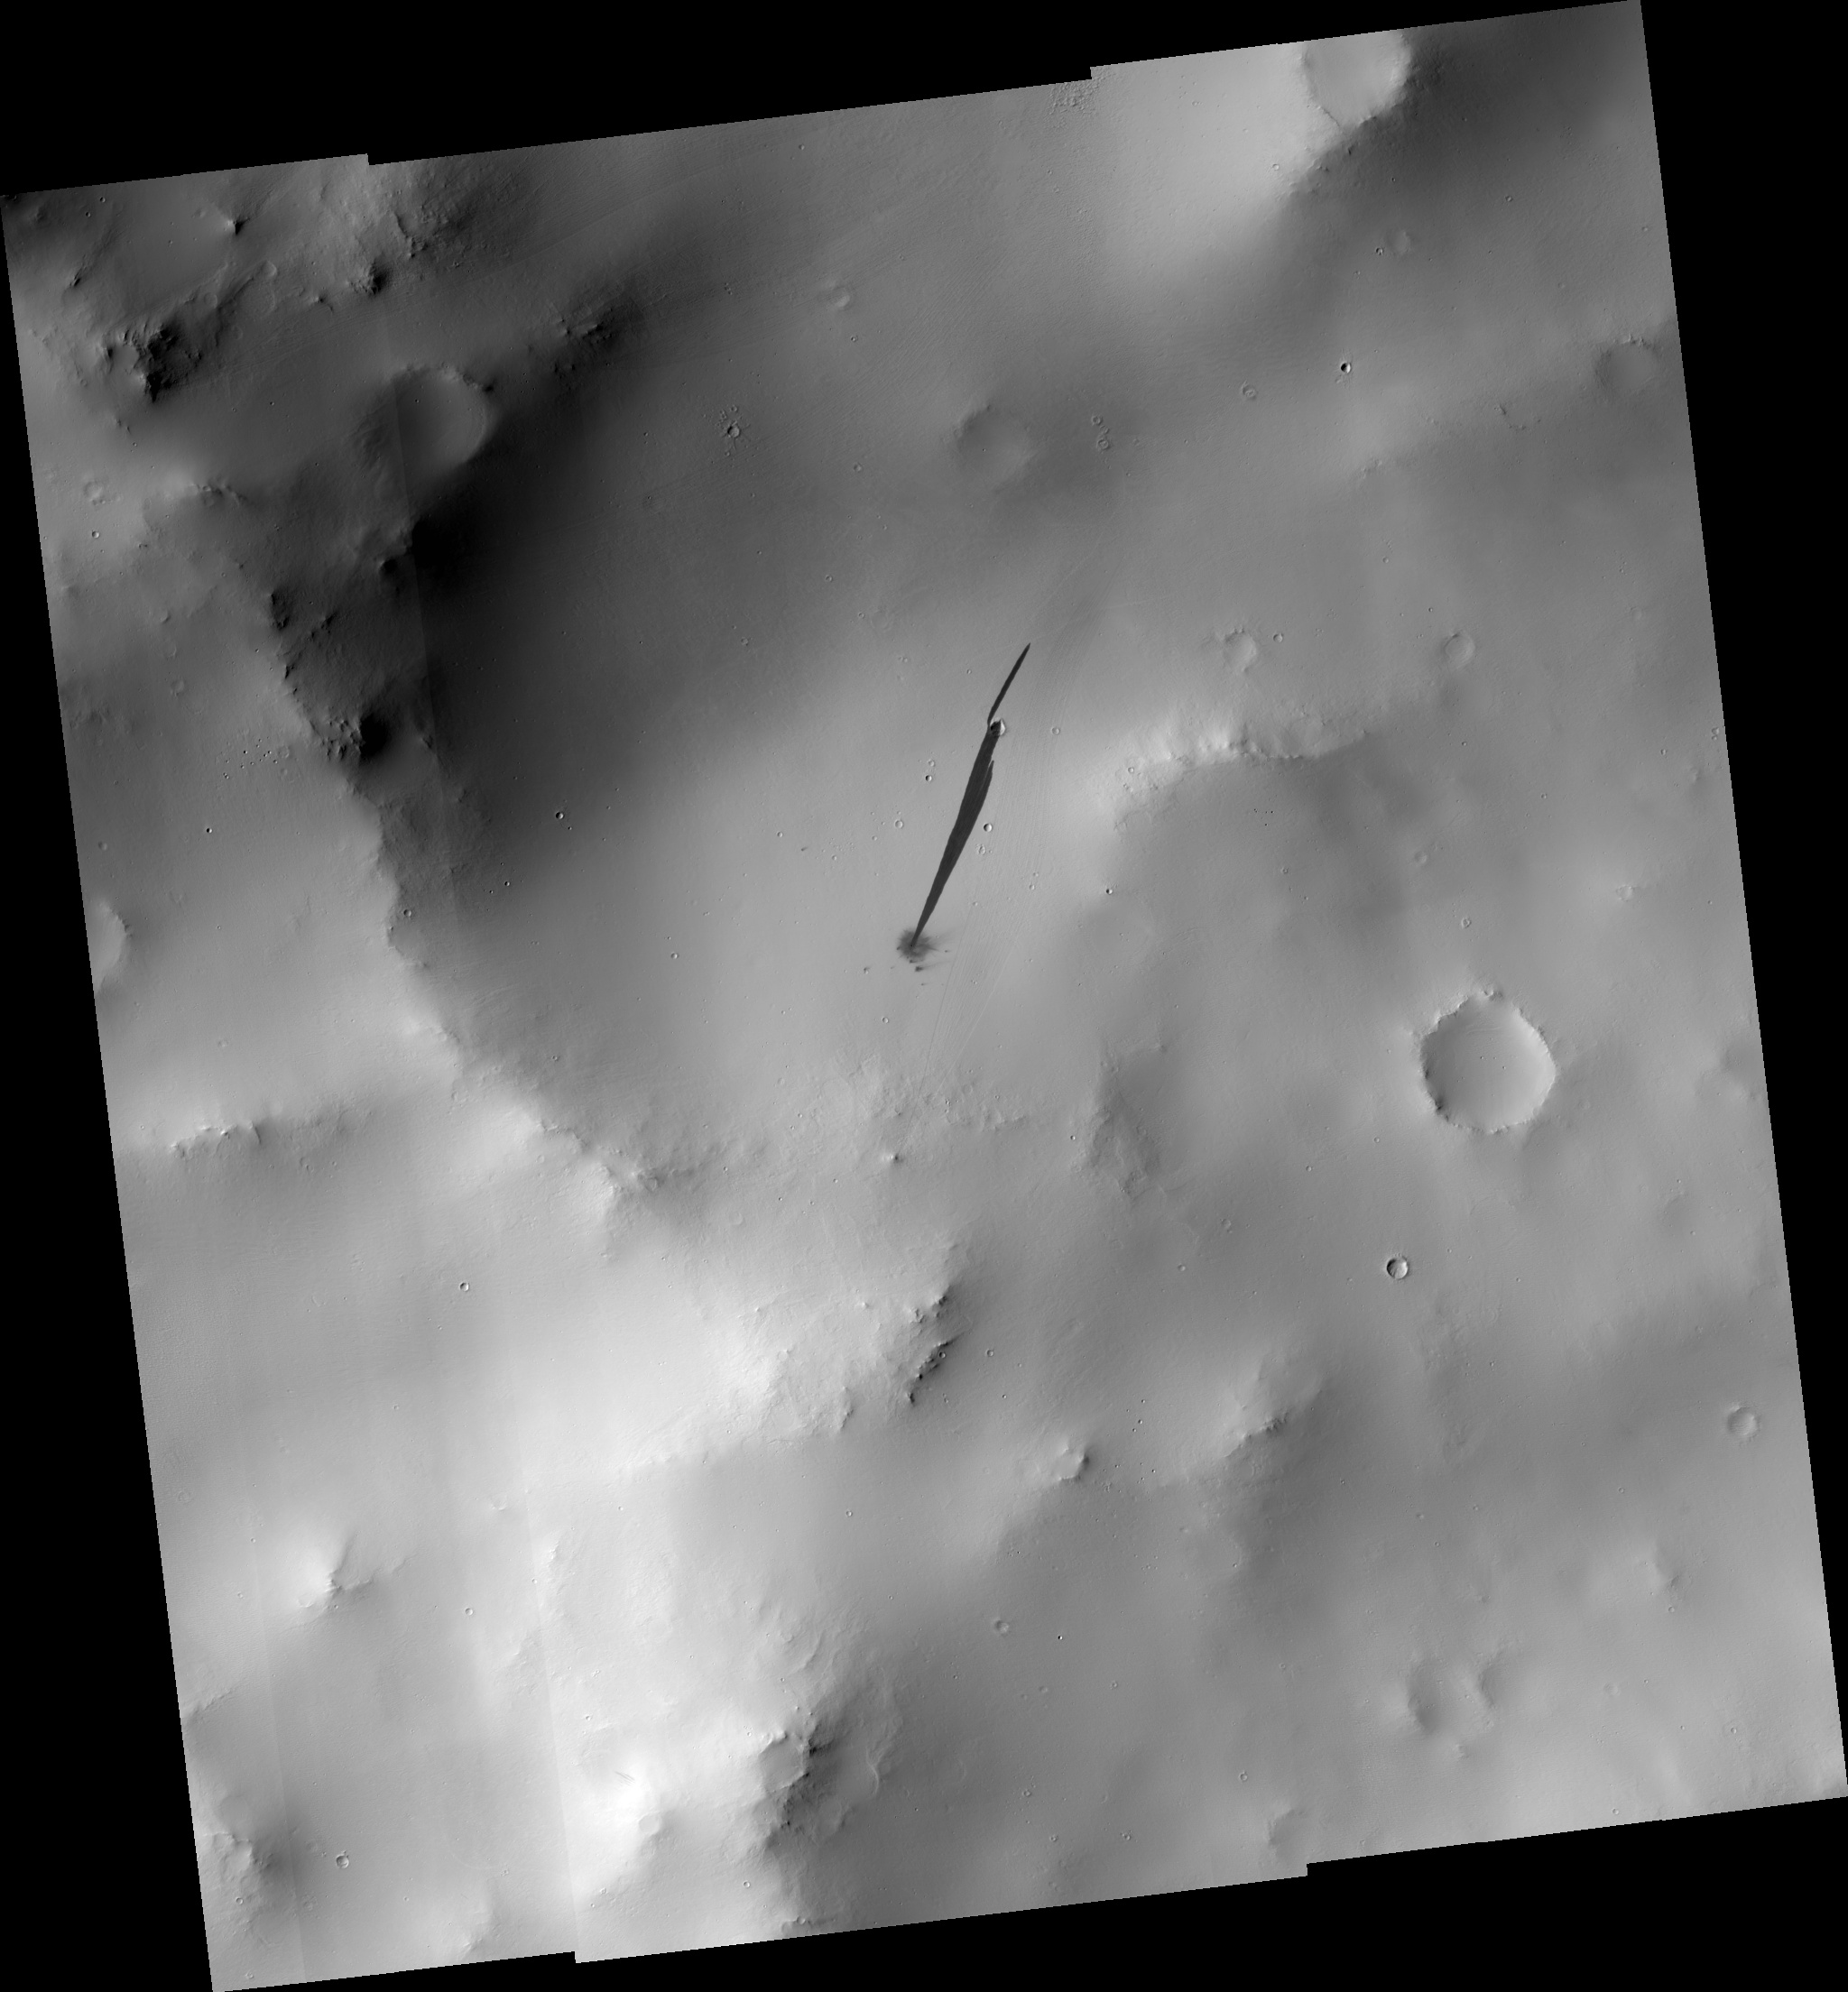 Impact crater and slope streak on Mars